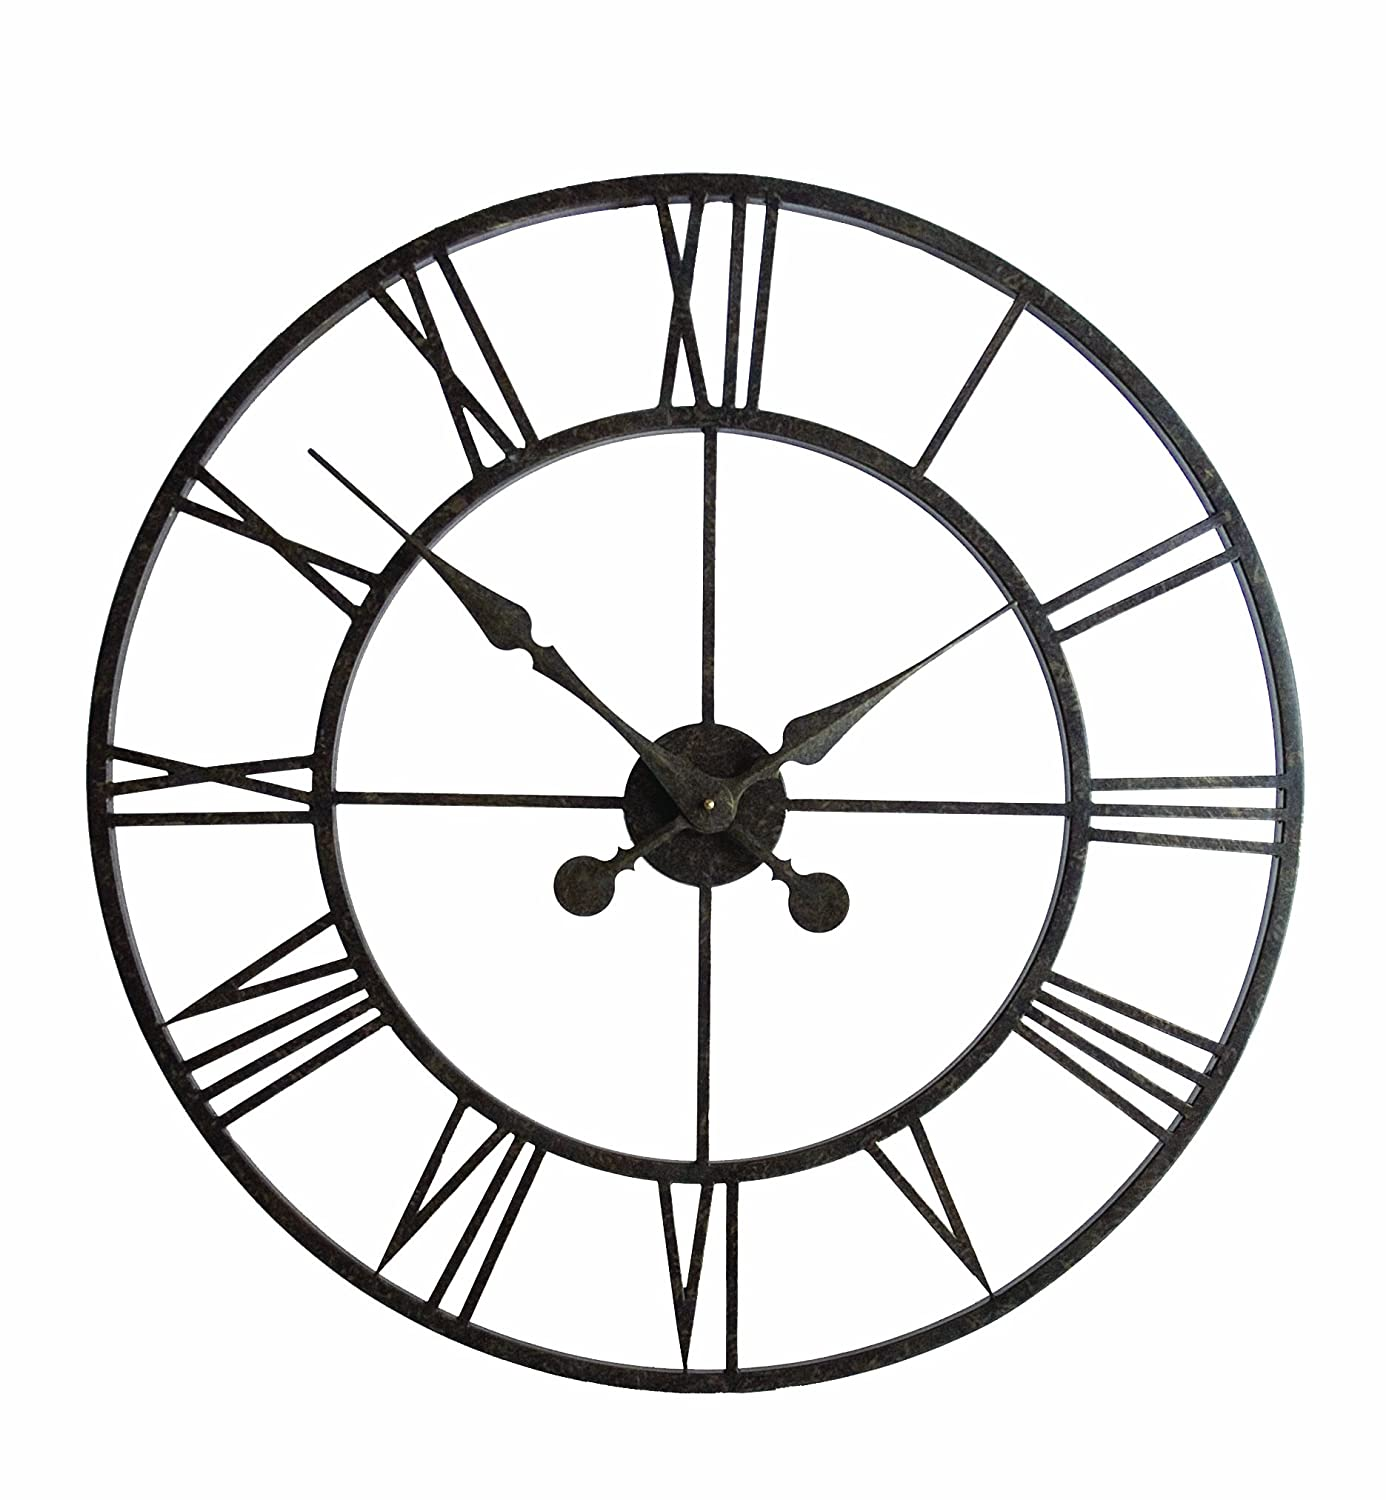 Town & Country Weathereye WEA7 30-inch Metal Frame Outdoor Clock ...